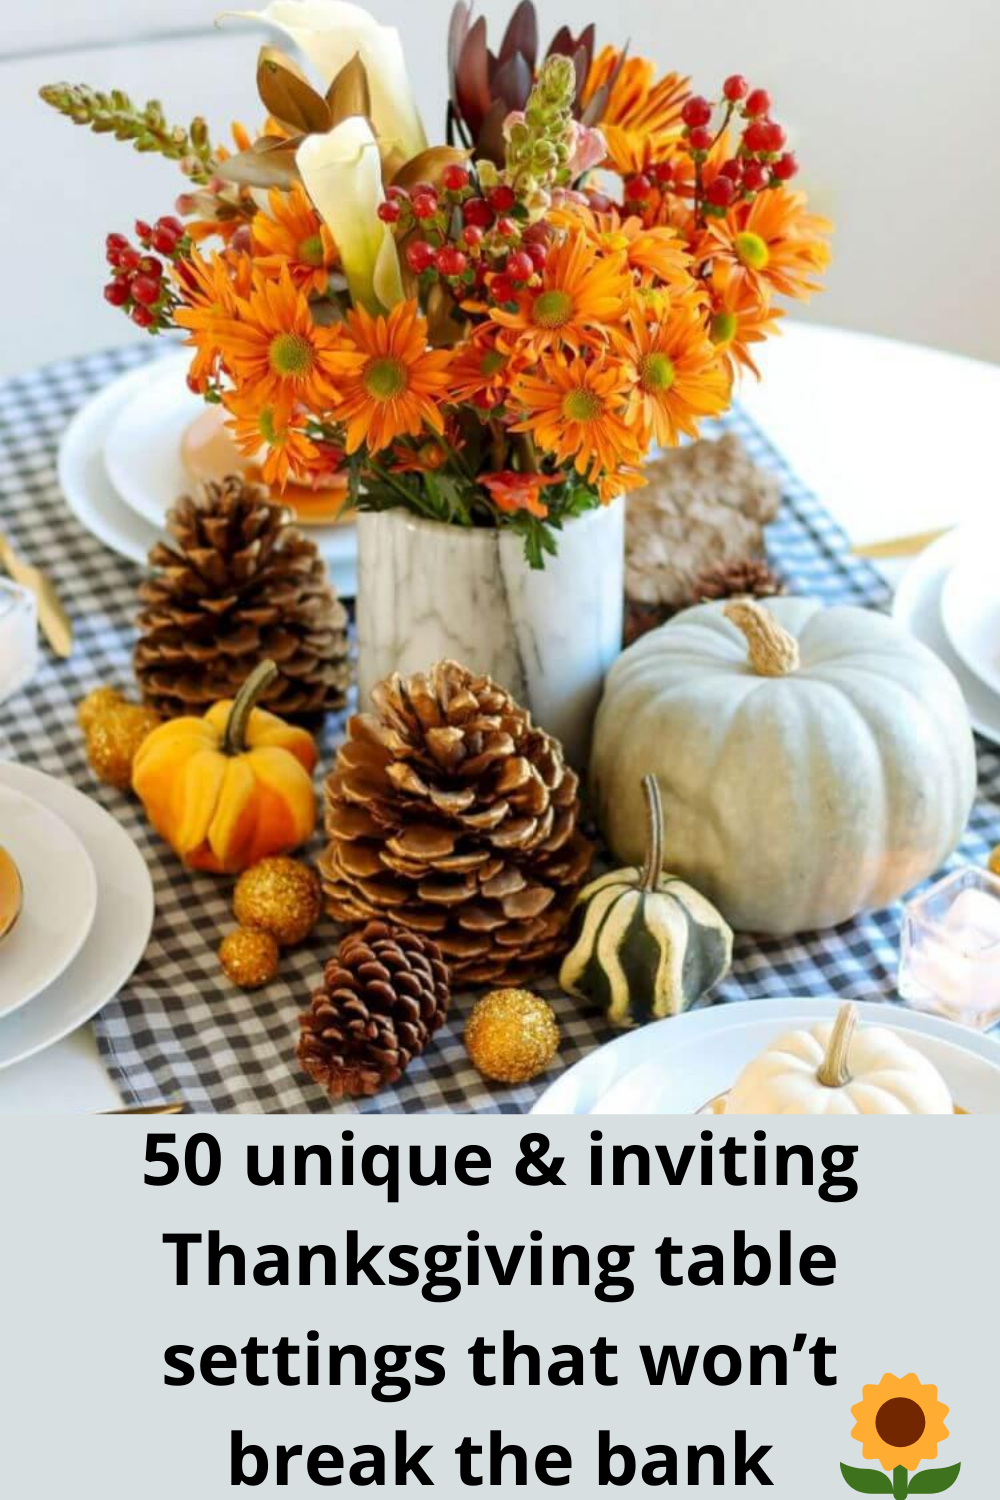 50 Unique Inviting Thanksgiving Table Settings That Won T Break The Bank In 2020 Thanksgiving Table Thanksgiving Table Settings Unique Thanksgiving Table